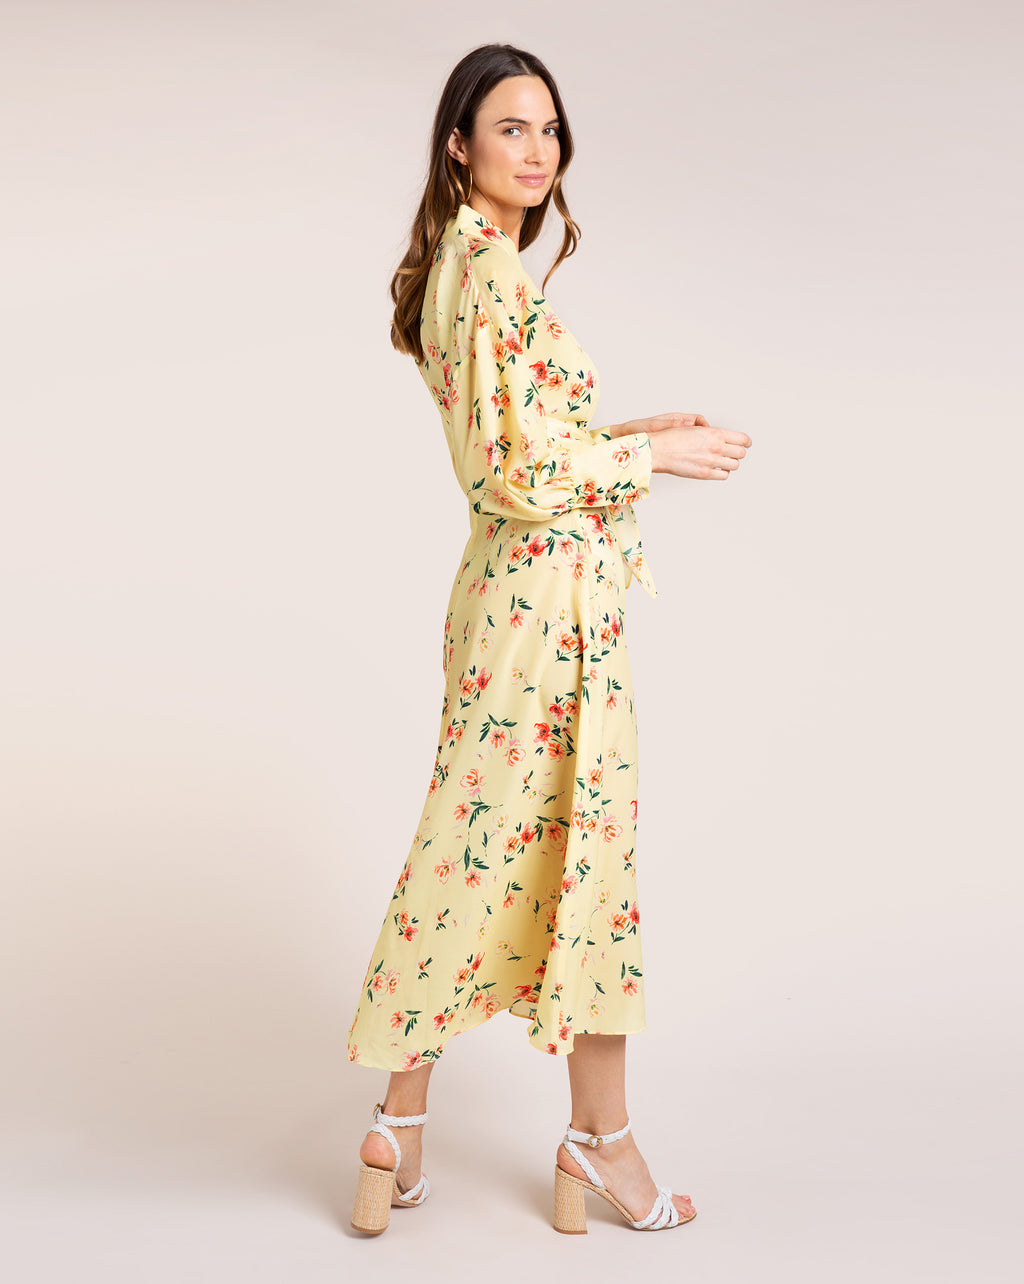 Bronte Dress - Fleur Yellow